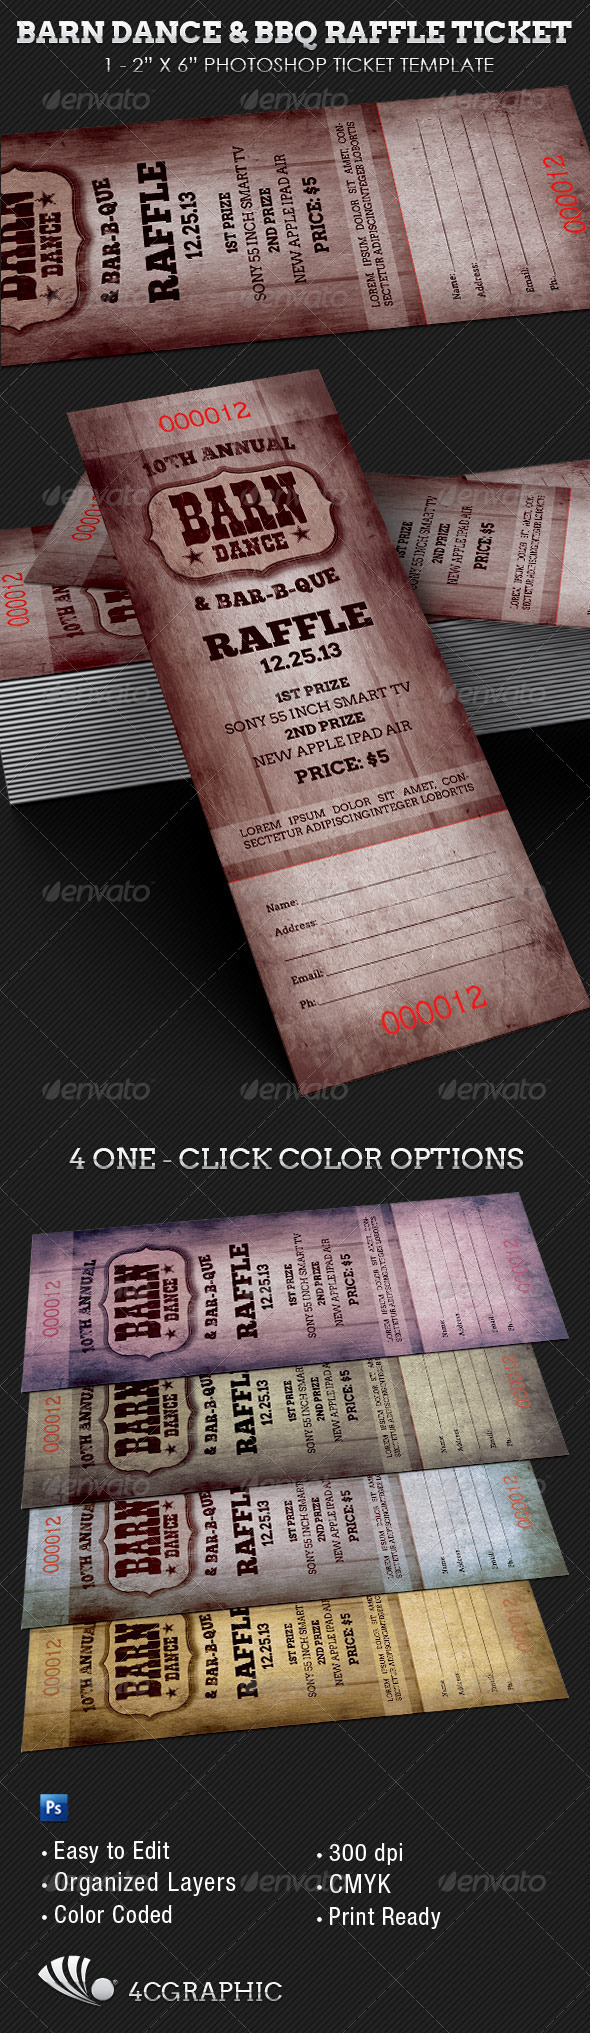 bbq ticket template free - barn dance bbq raffle ticket template on behance